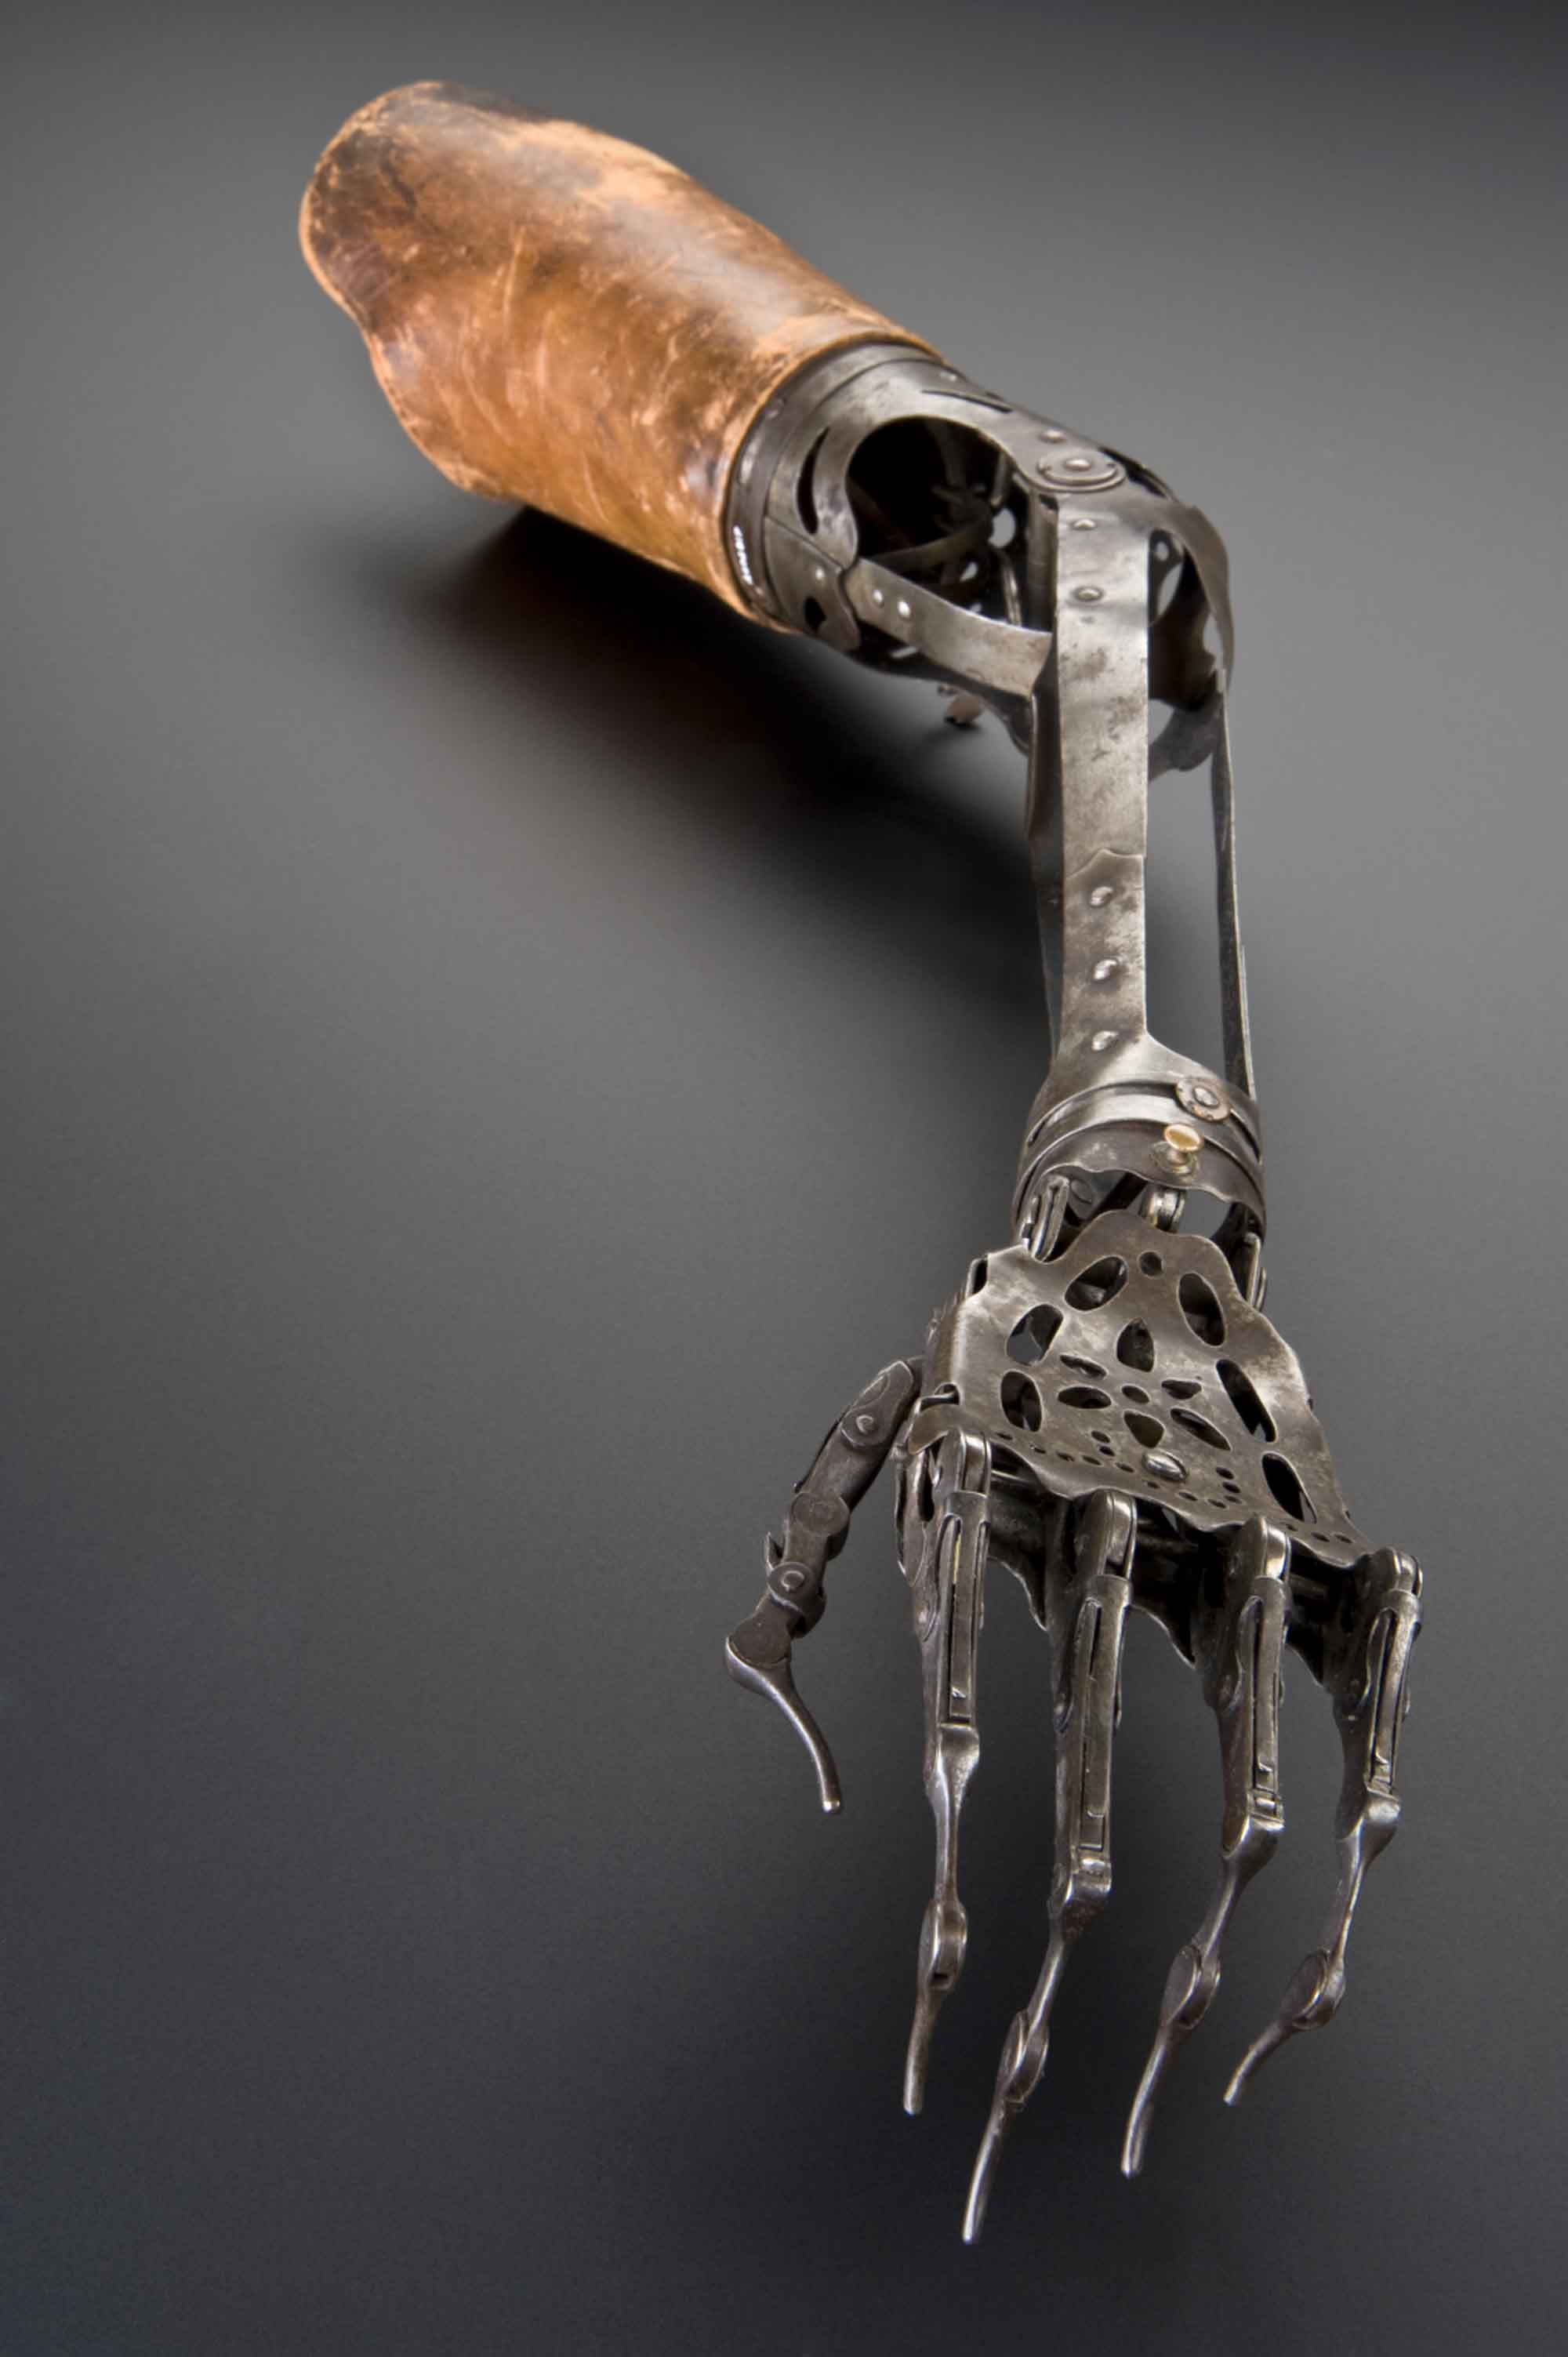 victorian-artificial-arm-1.jpg